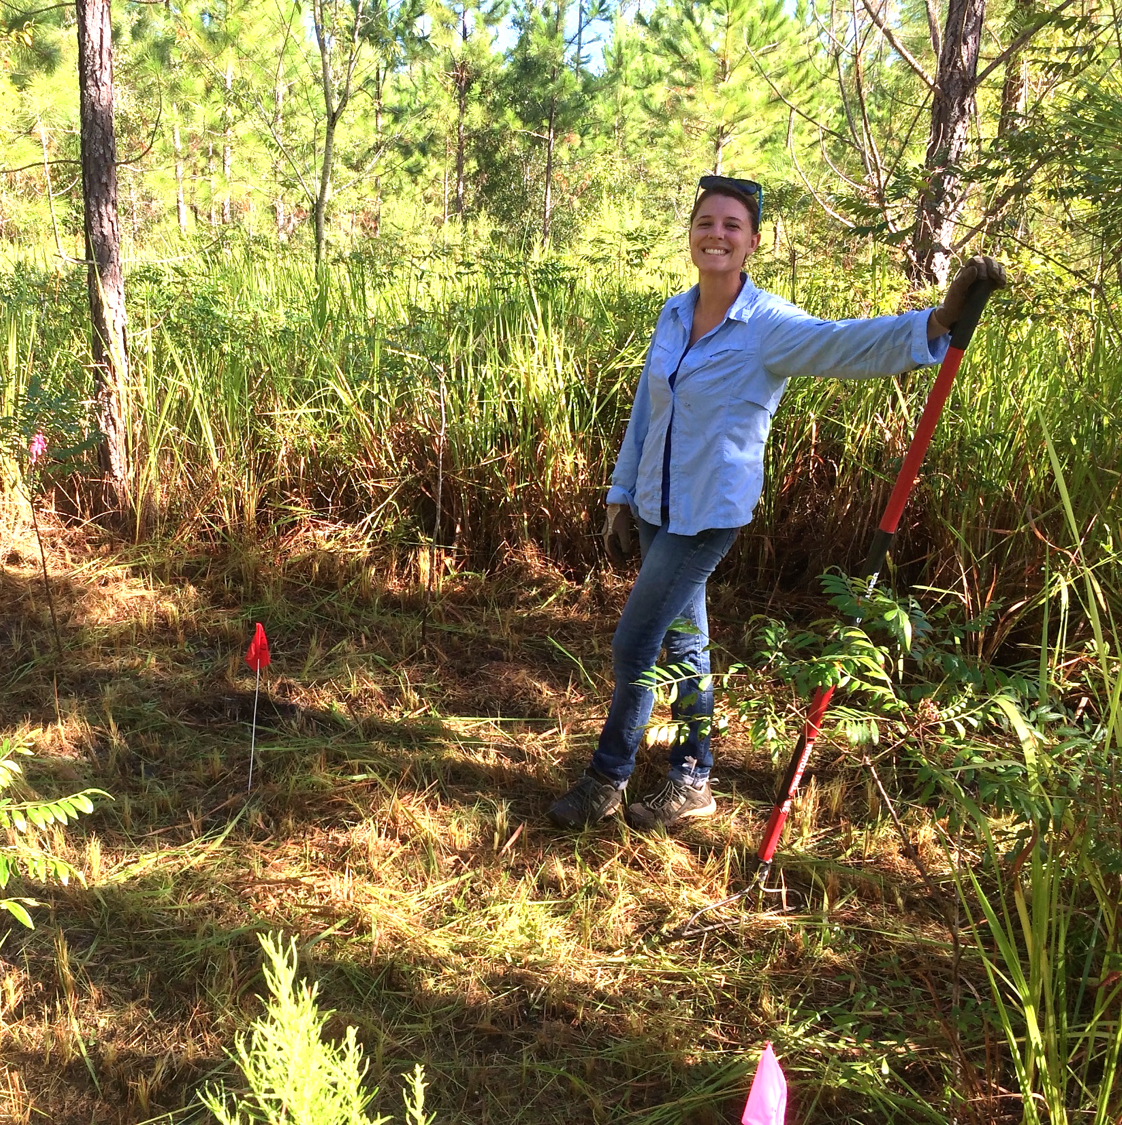 Julienne NeSmith removes exotic cogongrass (Imperata cylindrica) to test effects of the invader on pine tree performance across an environmental gradient at an experimental site near Archer, Florida, in October 2014. Credit: Luke Flory.